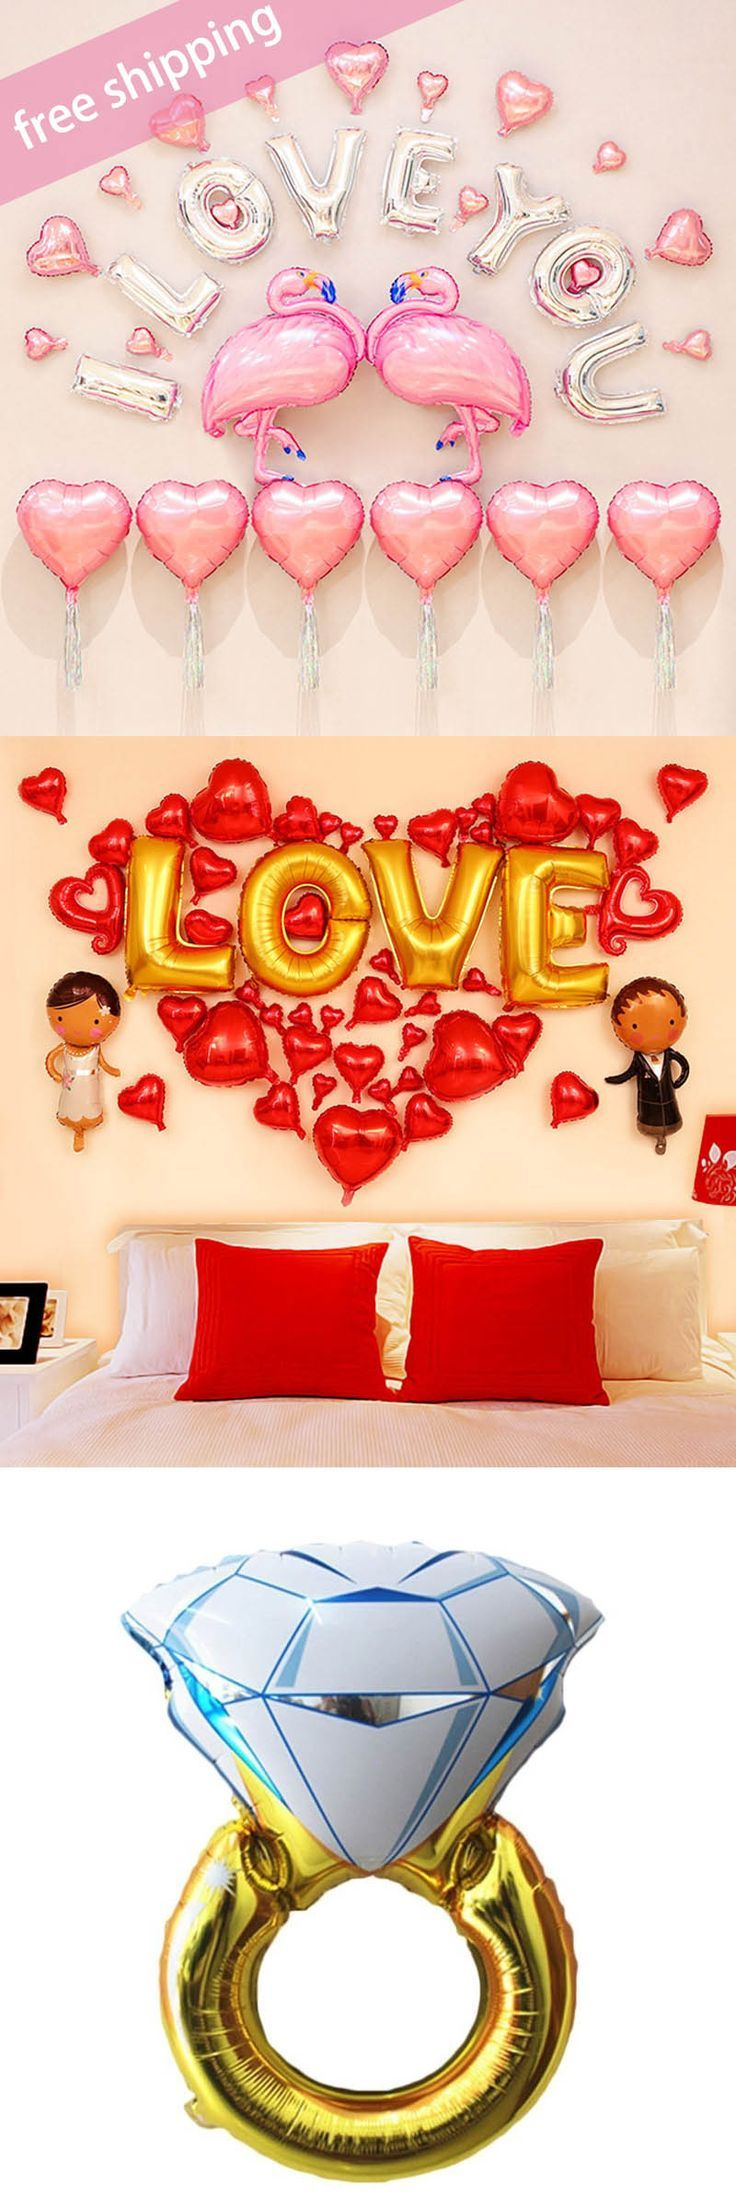 Up to 80% off and free shipping worldwide Rosewholesale decoration balloons for